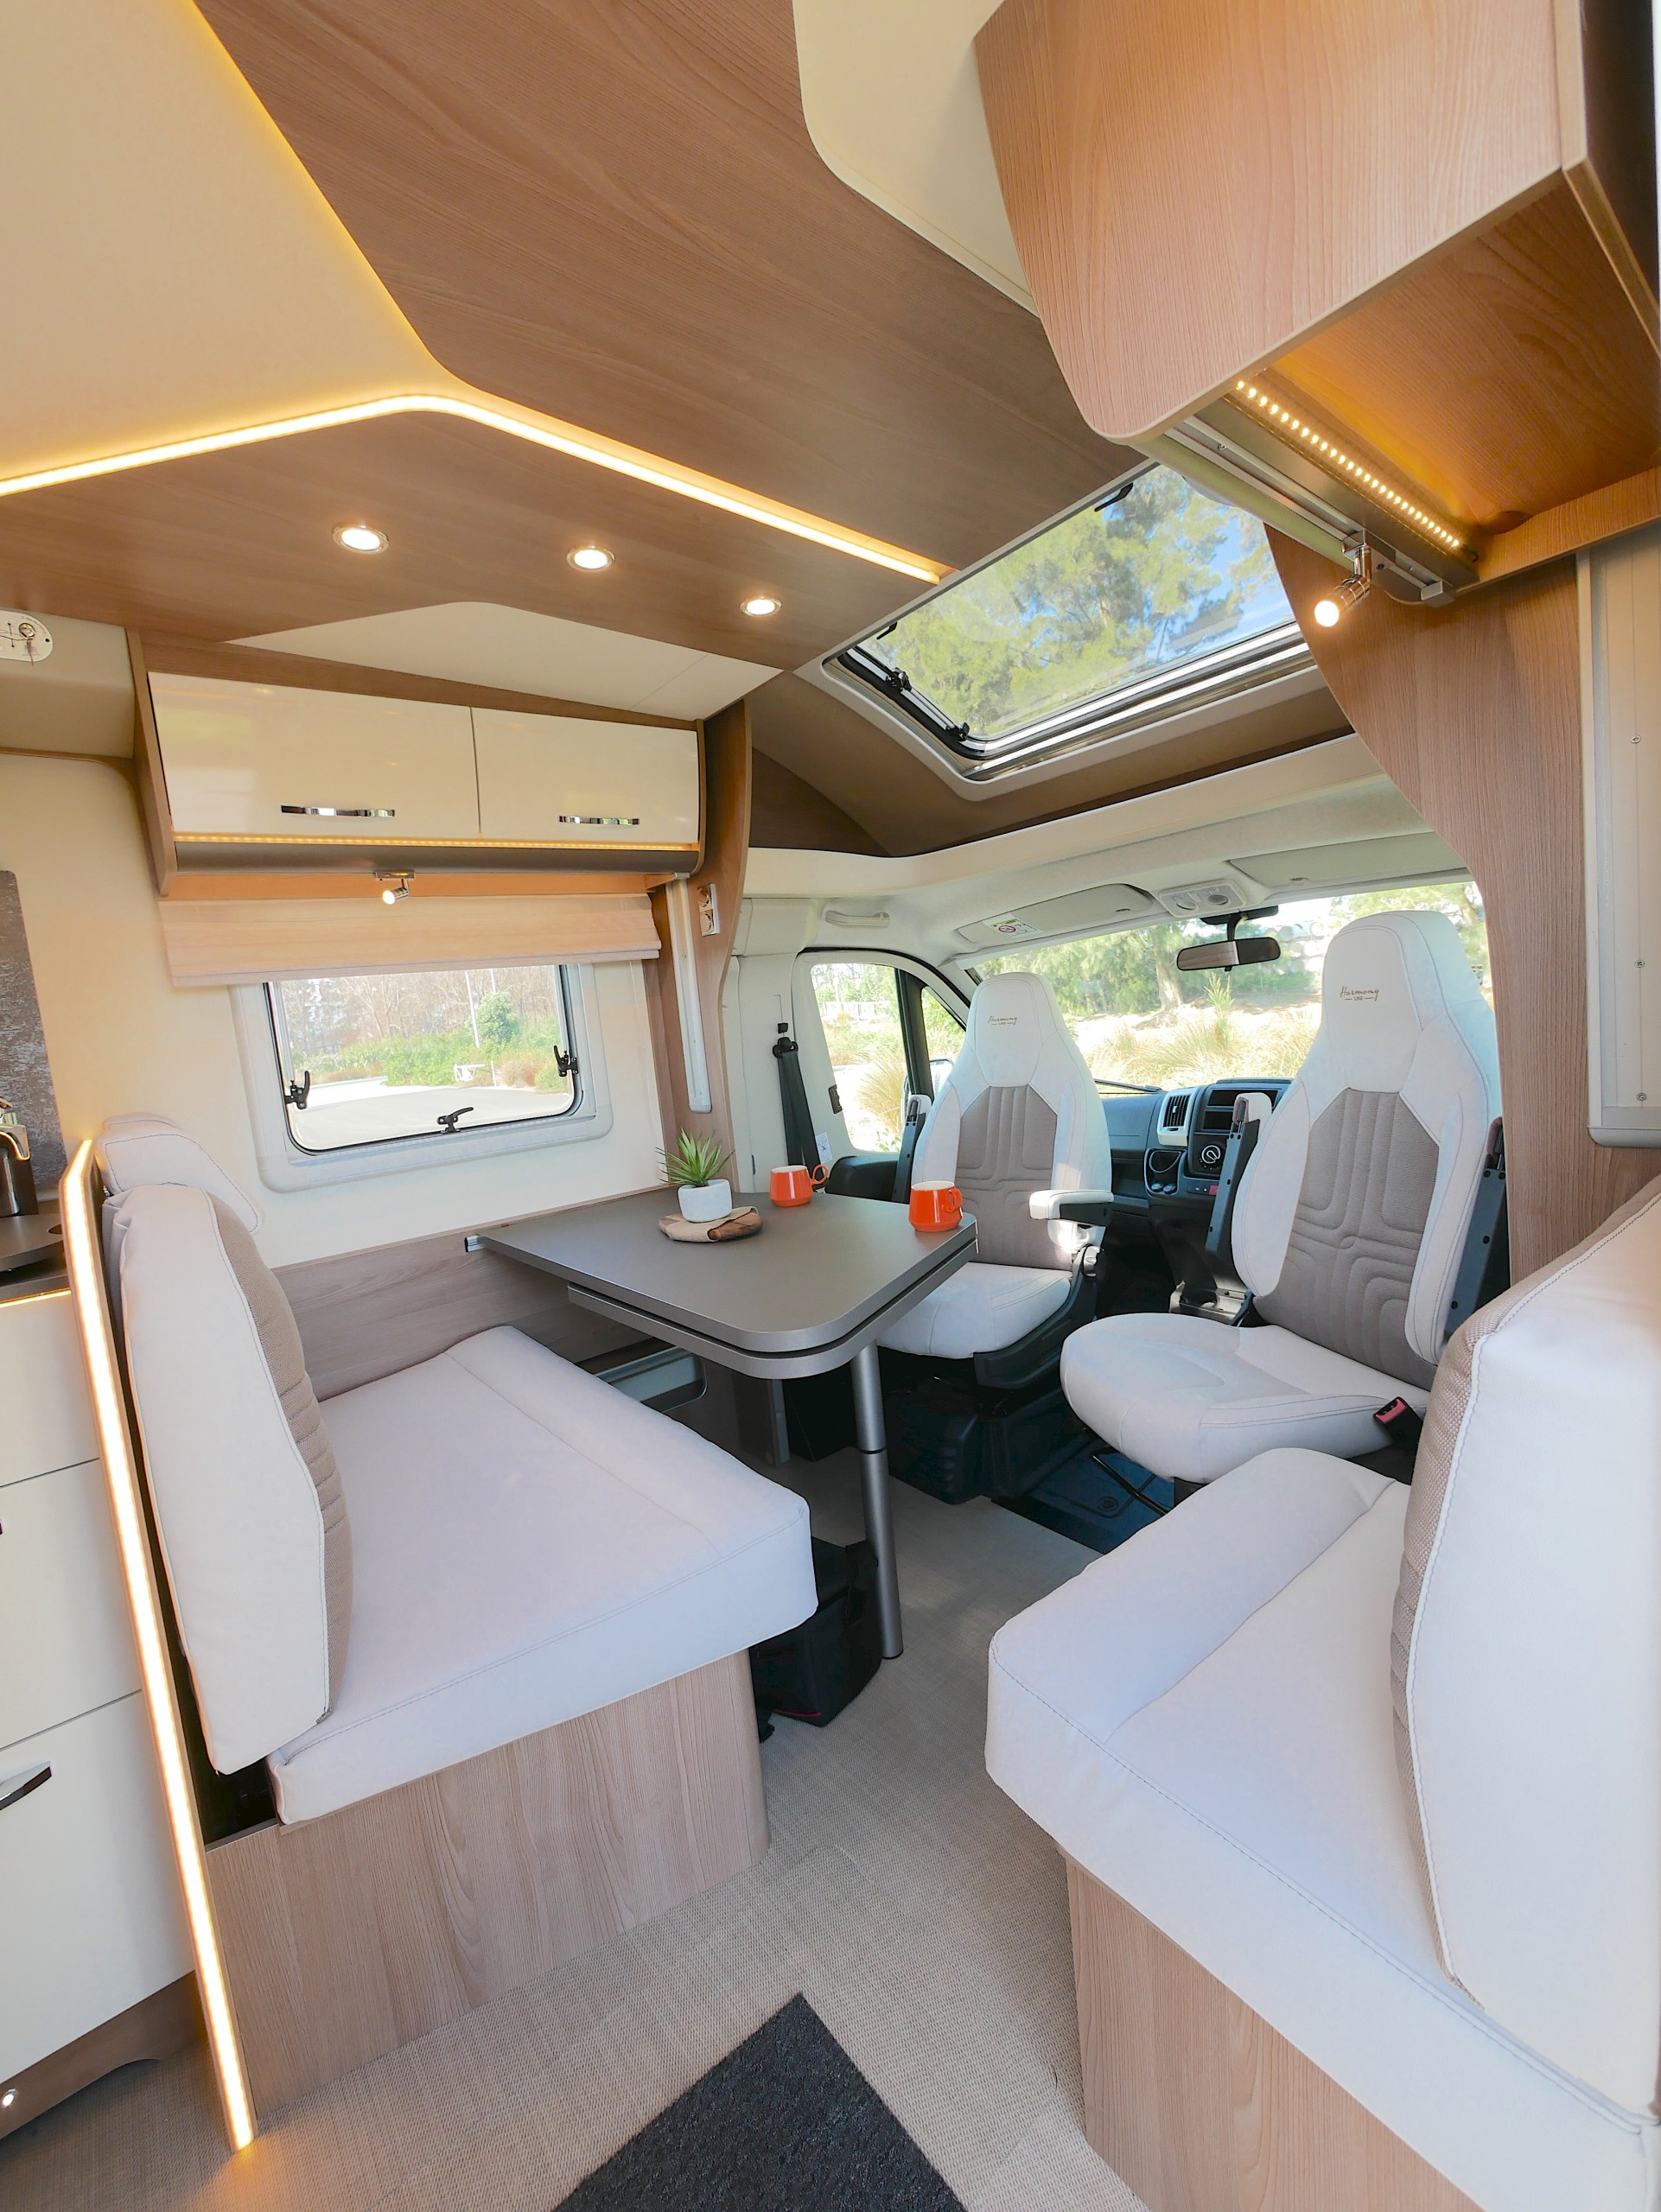 Stepping into the vehicle the lounge-dining area, swivel Captains chairs, and good-sized window. Plenty of LED lighting options as well